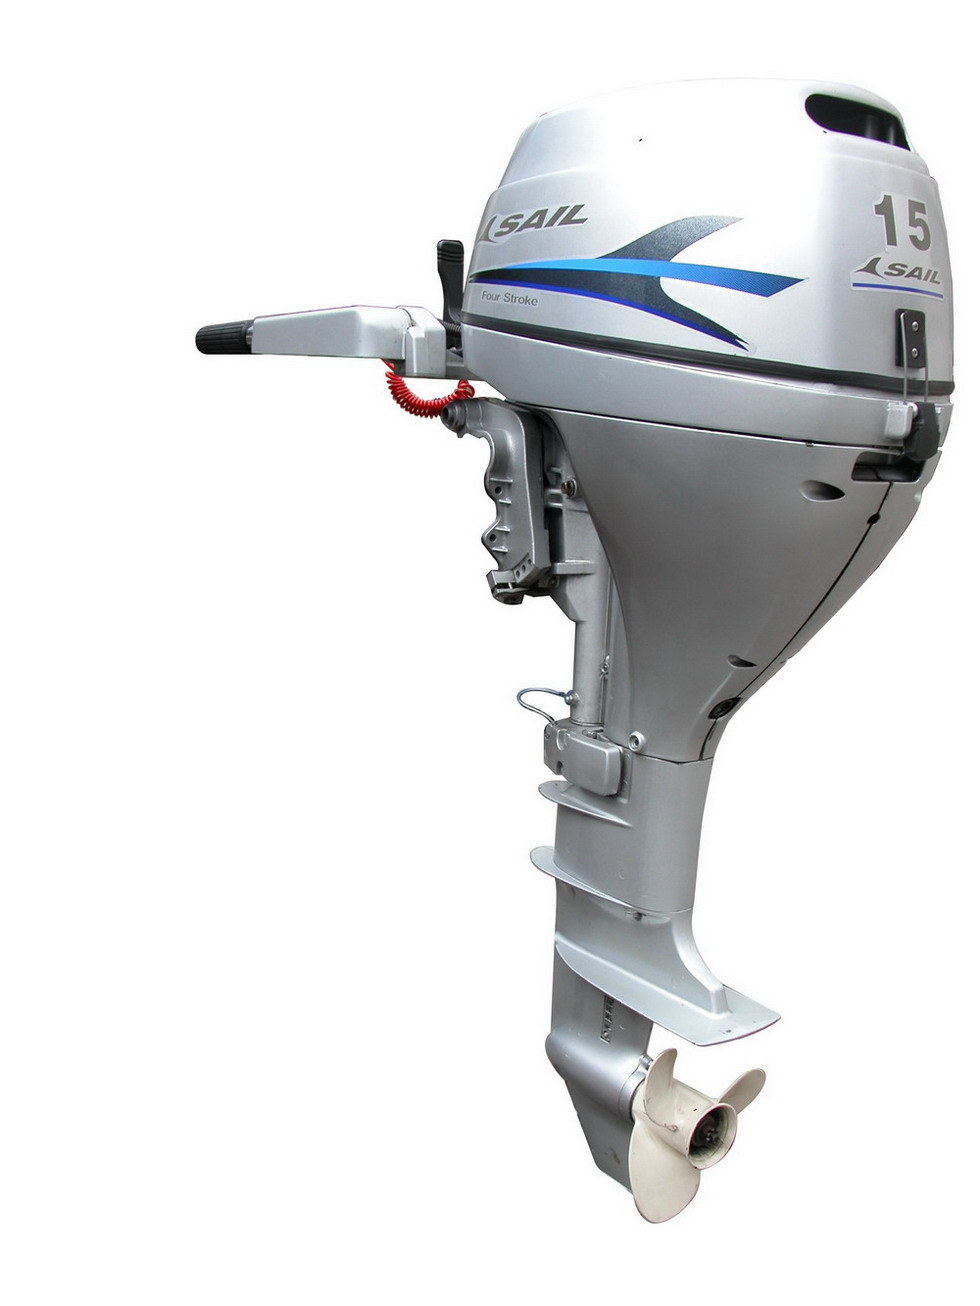 Two Stroke Vs. Four Stroke Outboard Motors | eHow.com